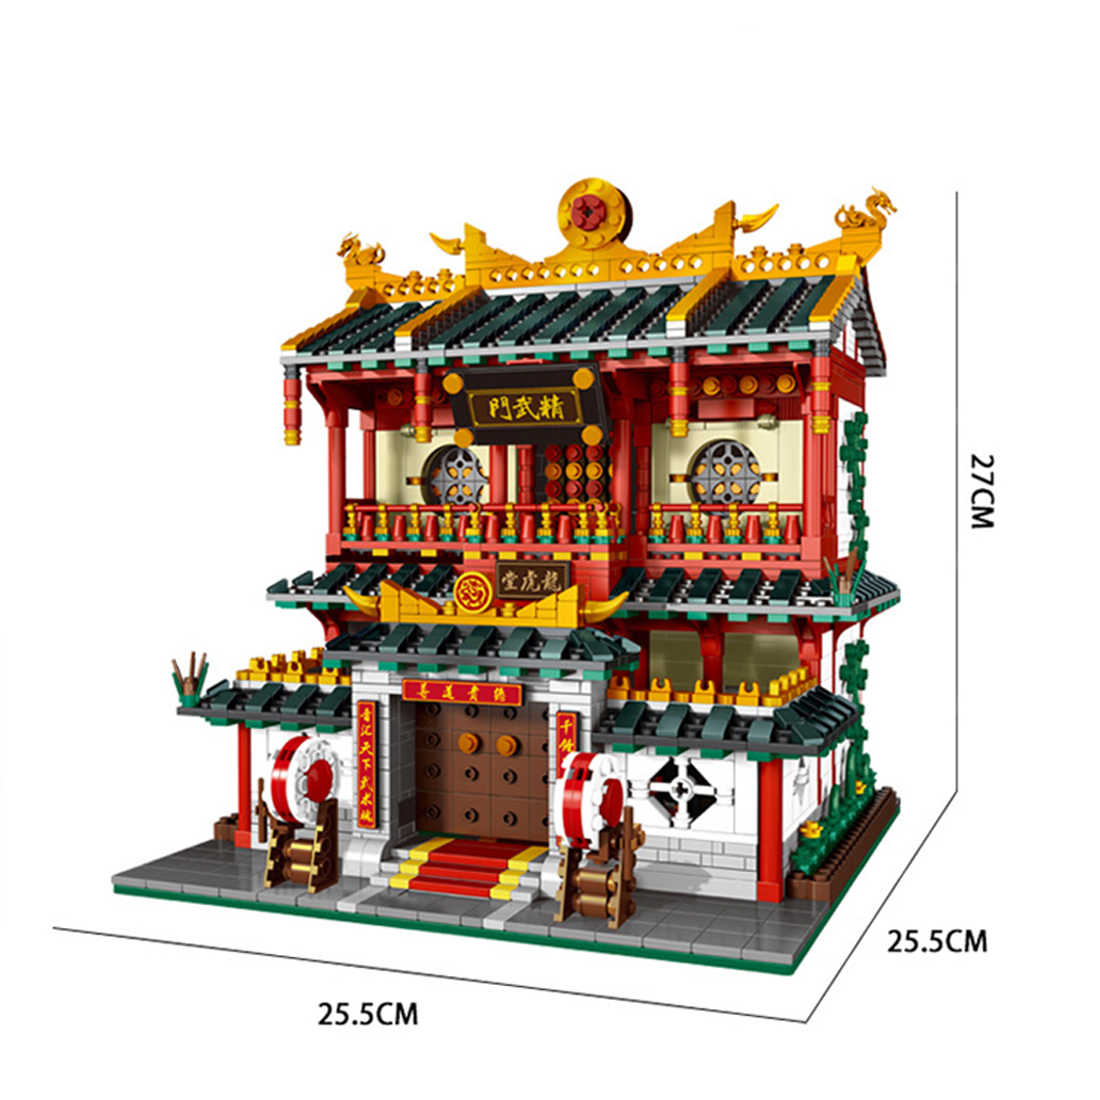 hot city creators Street view Chinese chinatown Kung Fu Martial Arts Club moc building blocks model figures brick toys for gift